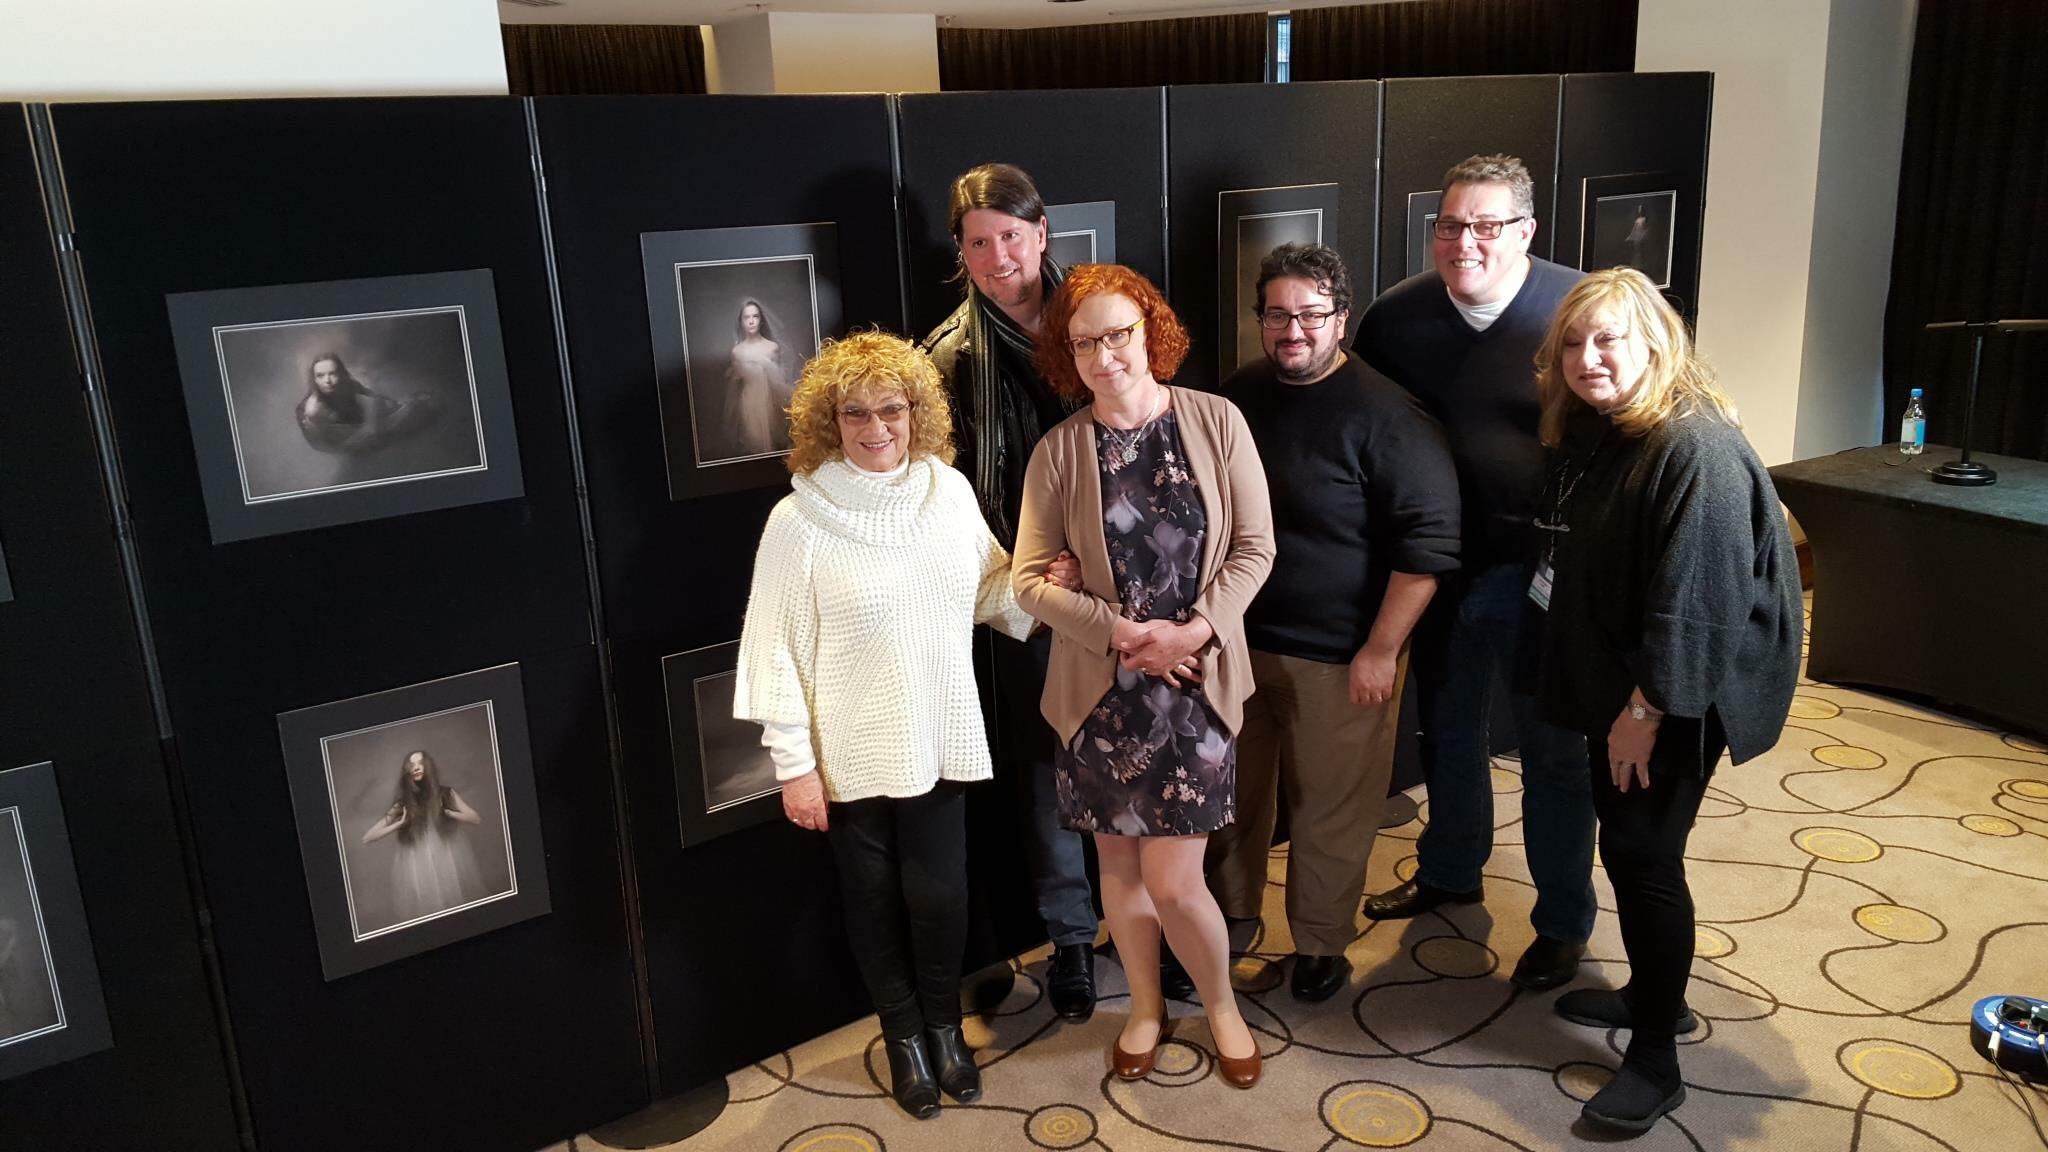 This Image Shows Jocelyn Conway with the Judges that awarded her a Fellowship at the SWPP Convention 2016